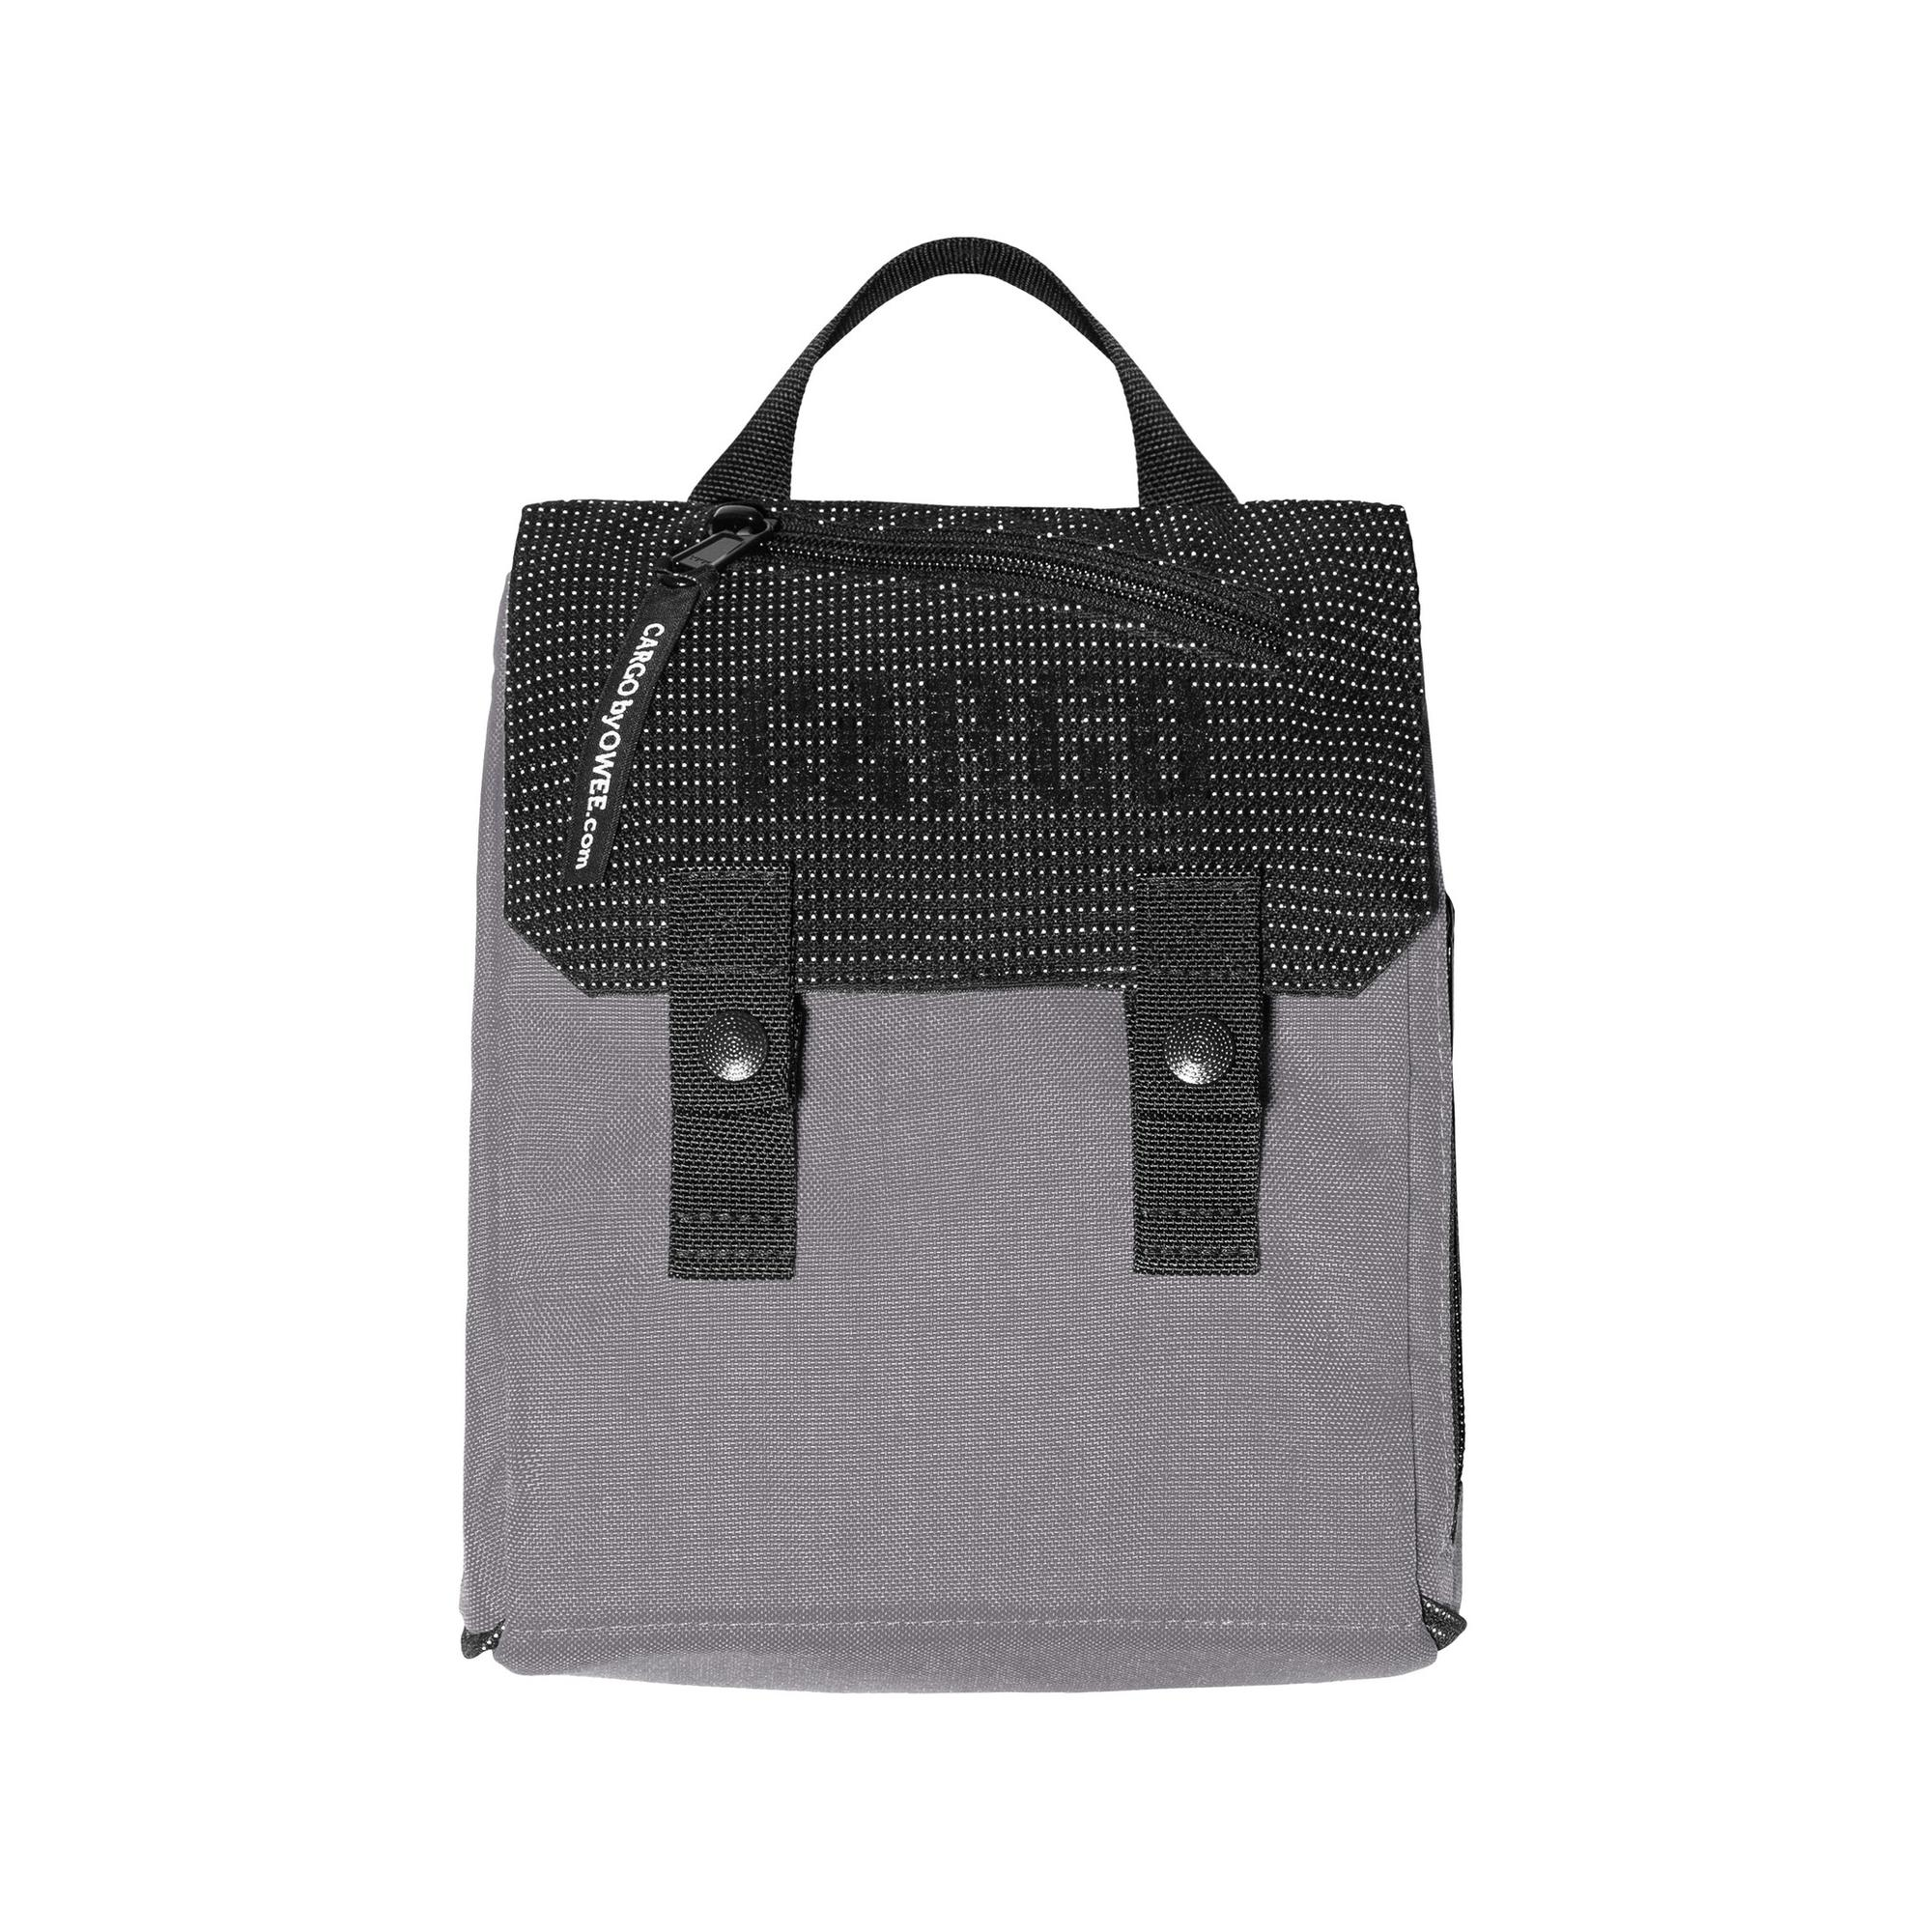 MINI TORBA NA RAMIĘ REFLECTIVE GREY - CARGO by OWEE